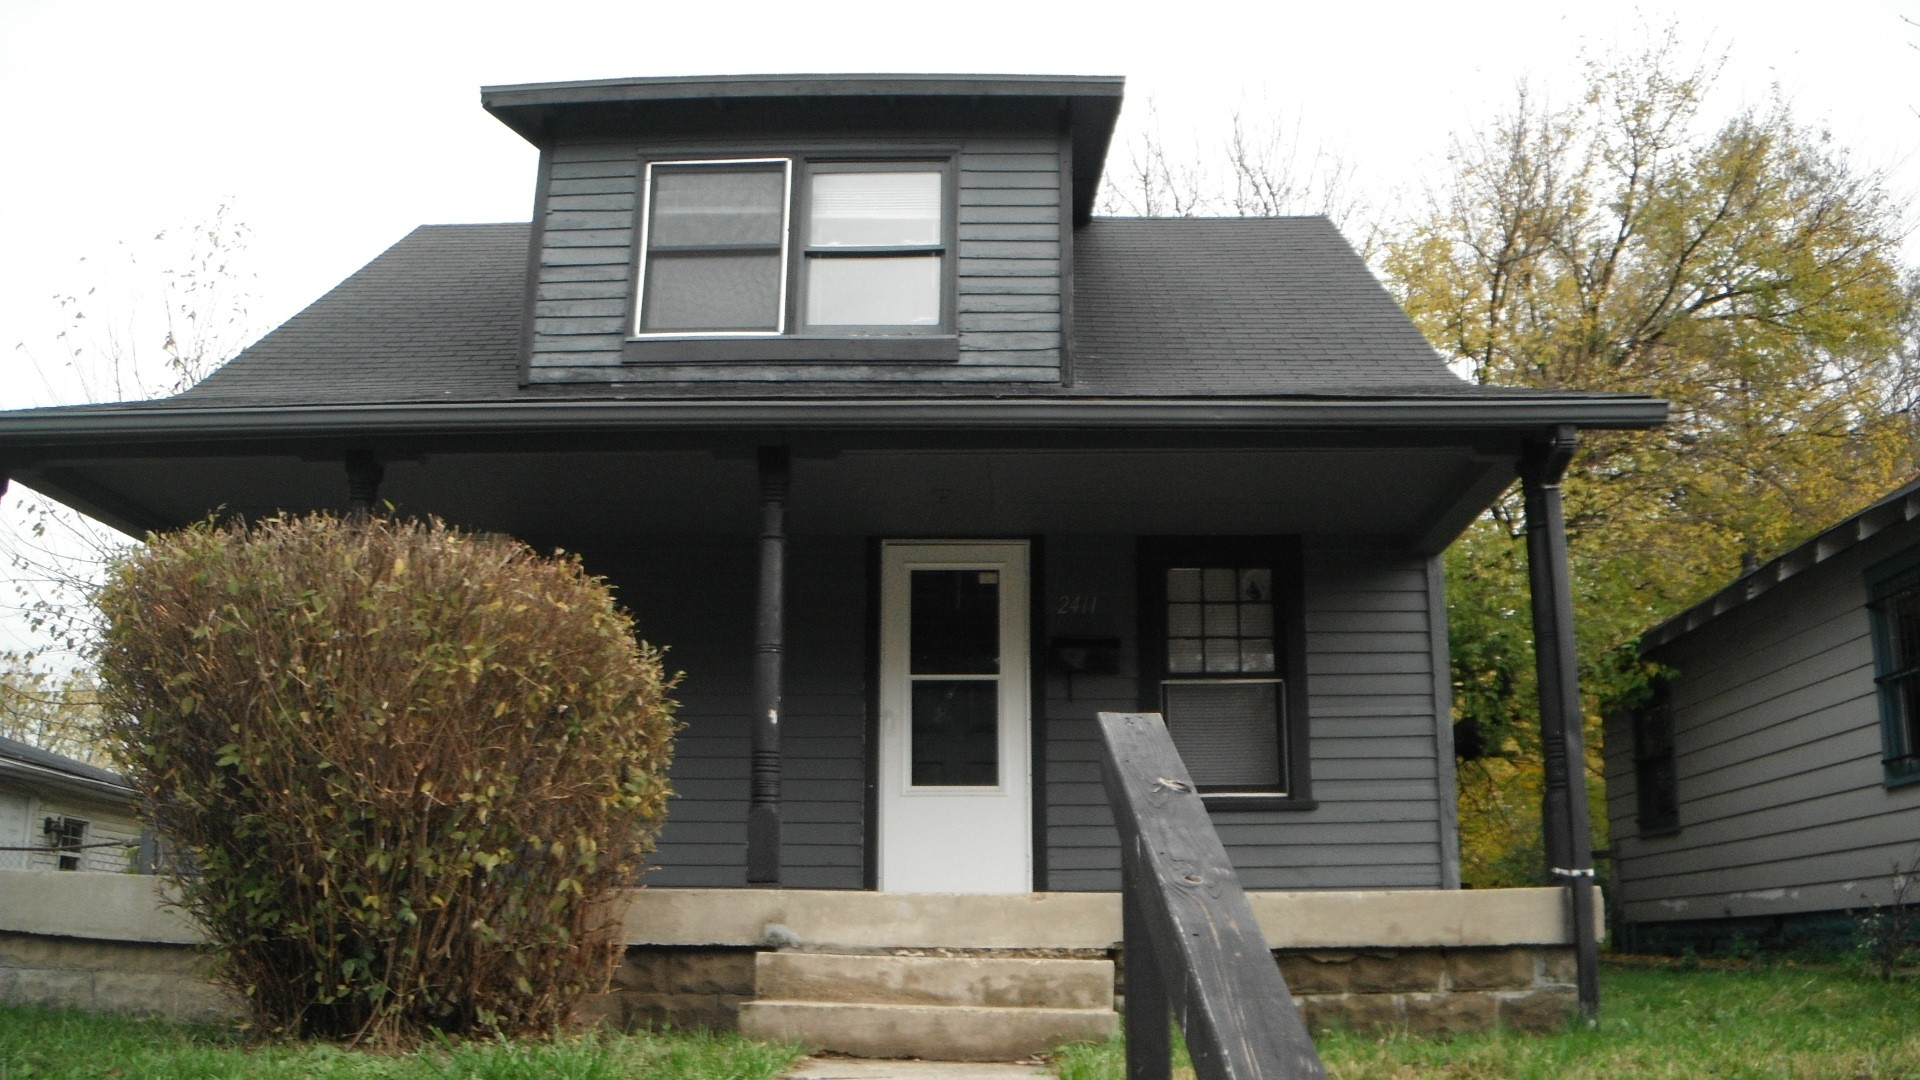 3536 n parker ave indianapolis in 46218 1 bedroom apartment for rent padmapper for Indianapolis one bedroom apartments